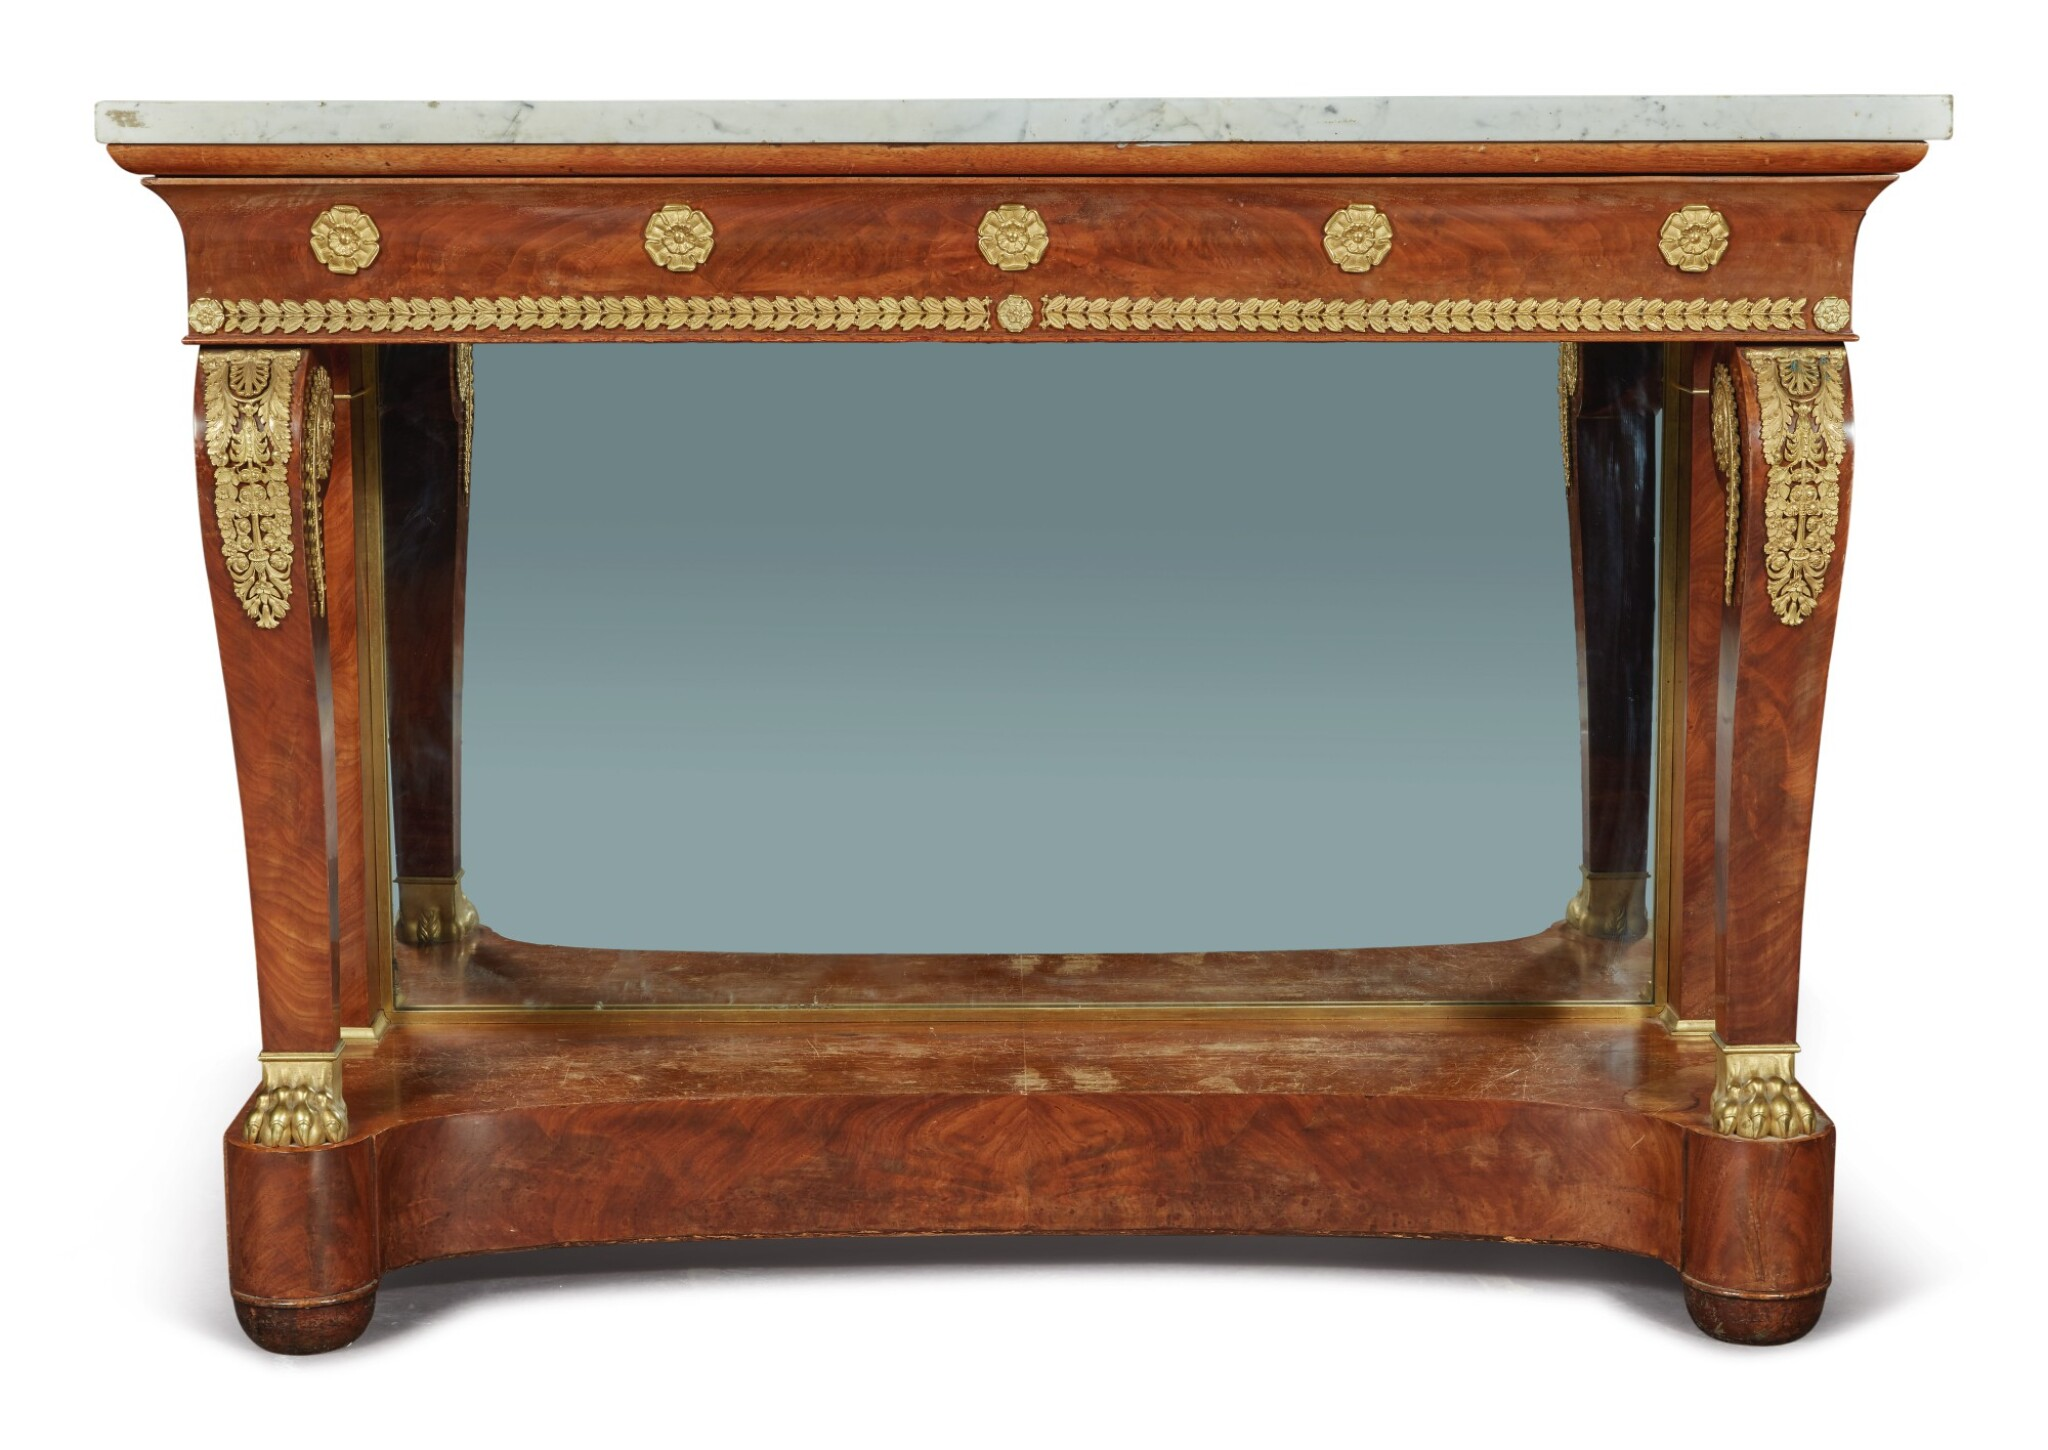 View full screen - View 1 of Lot 92. An Empire Gilt Bronze-Mounted Mahogany Console, Circa 1815.